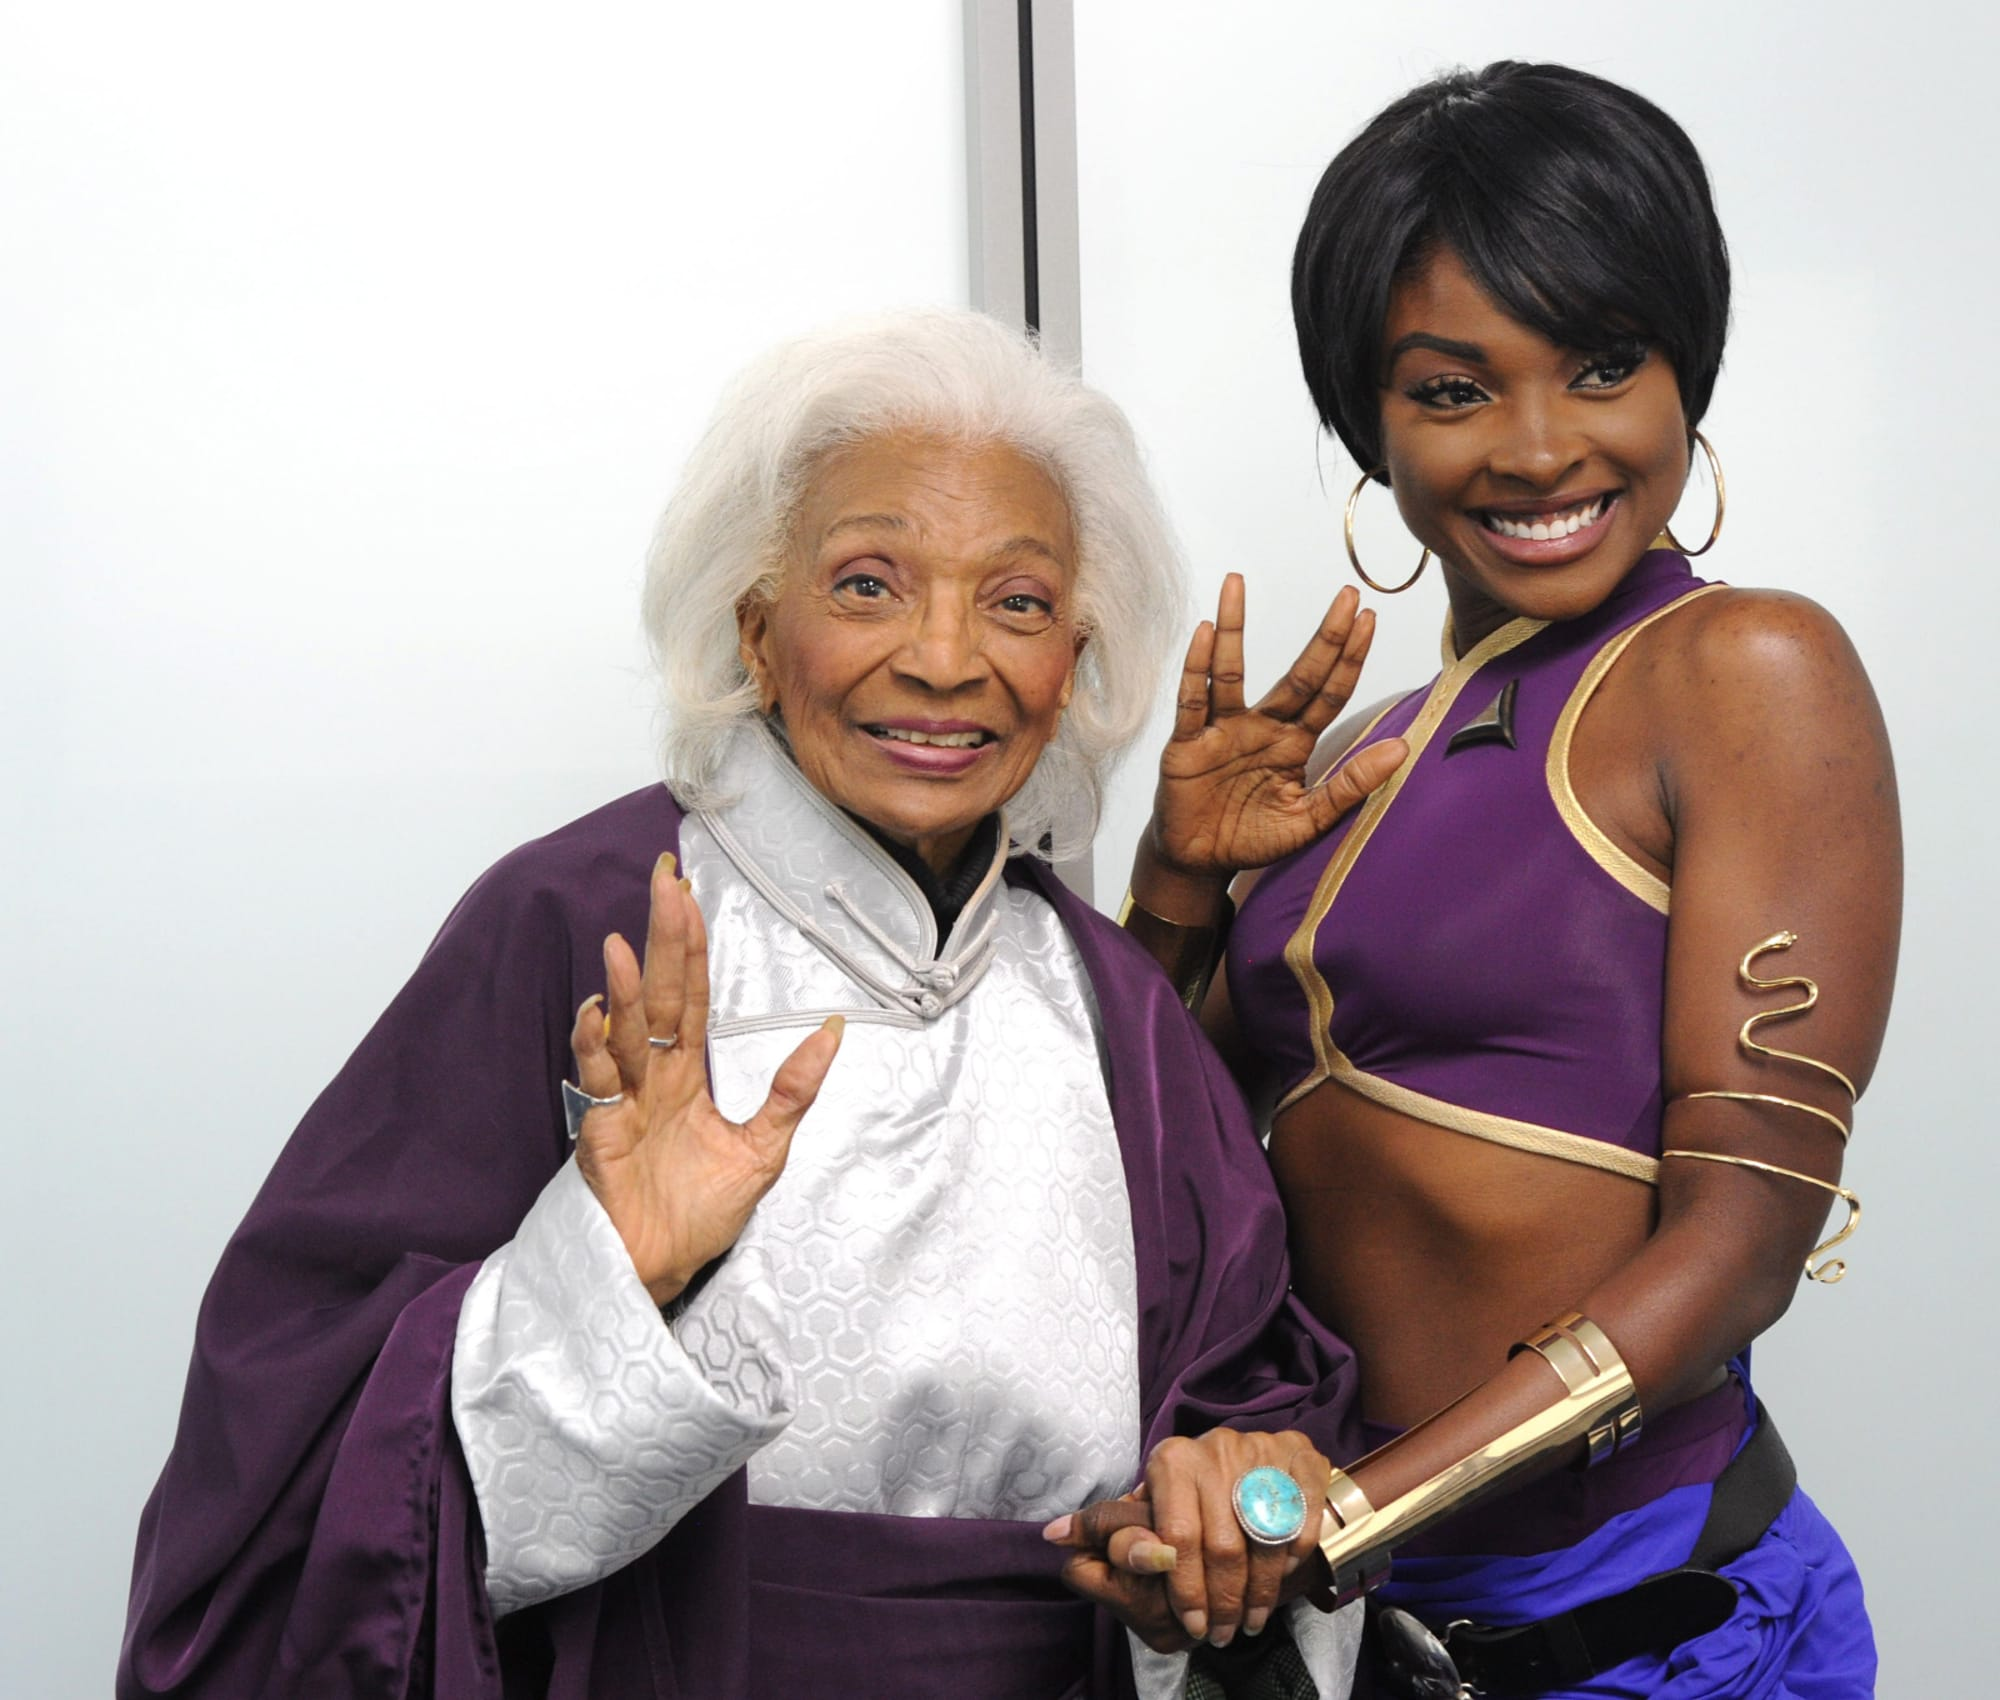 Nichelle Nichols helped create her character's name for Star Trek: TOS